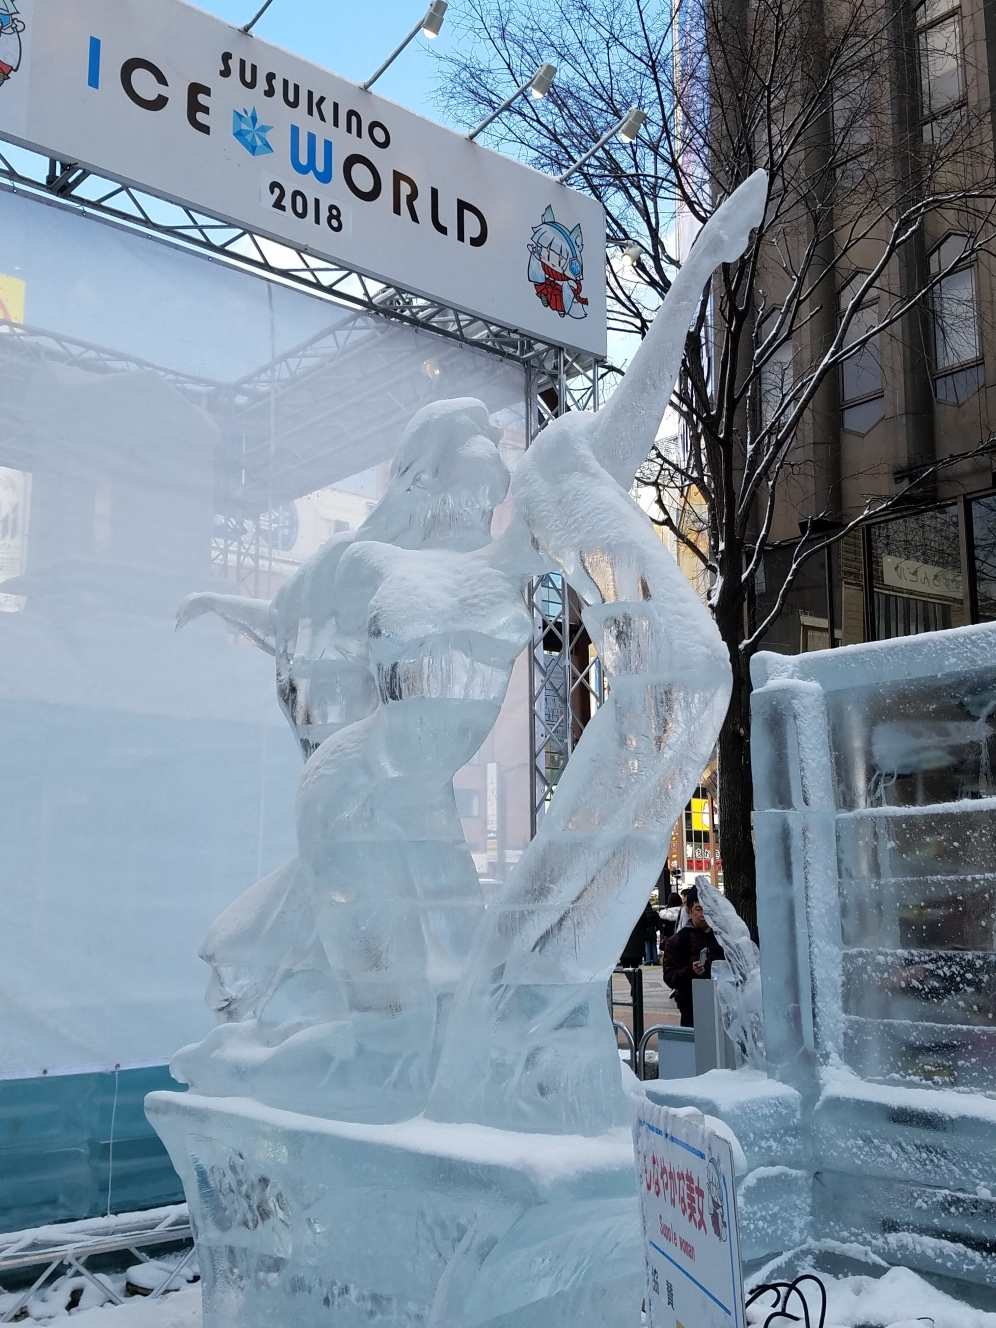 Susukino Ice World - Two Second Street - www.twosecondstreet.com